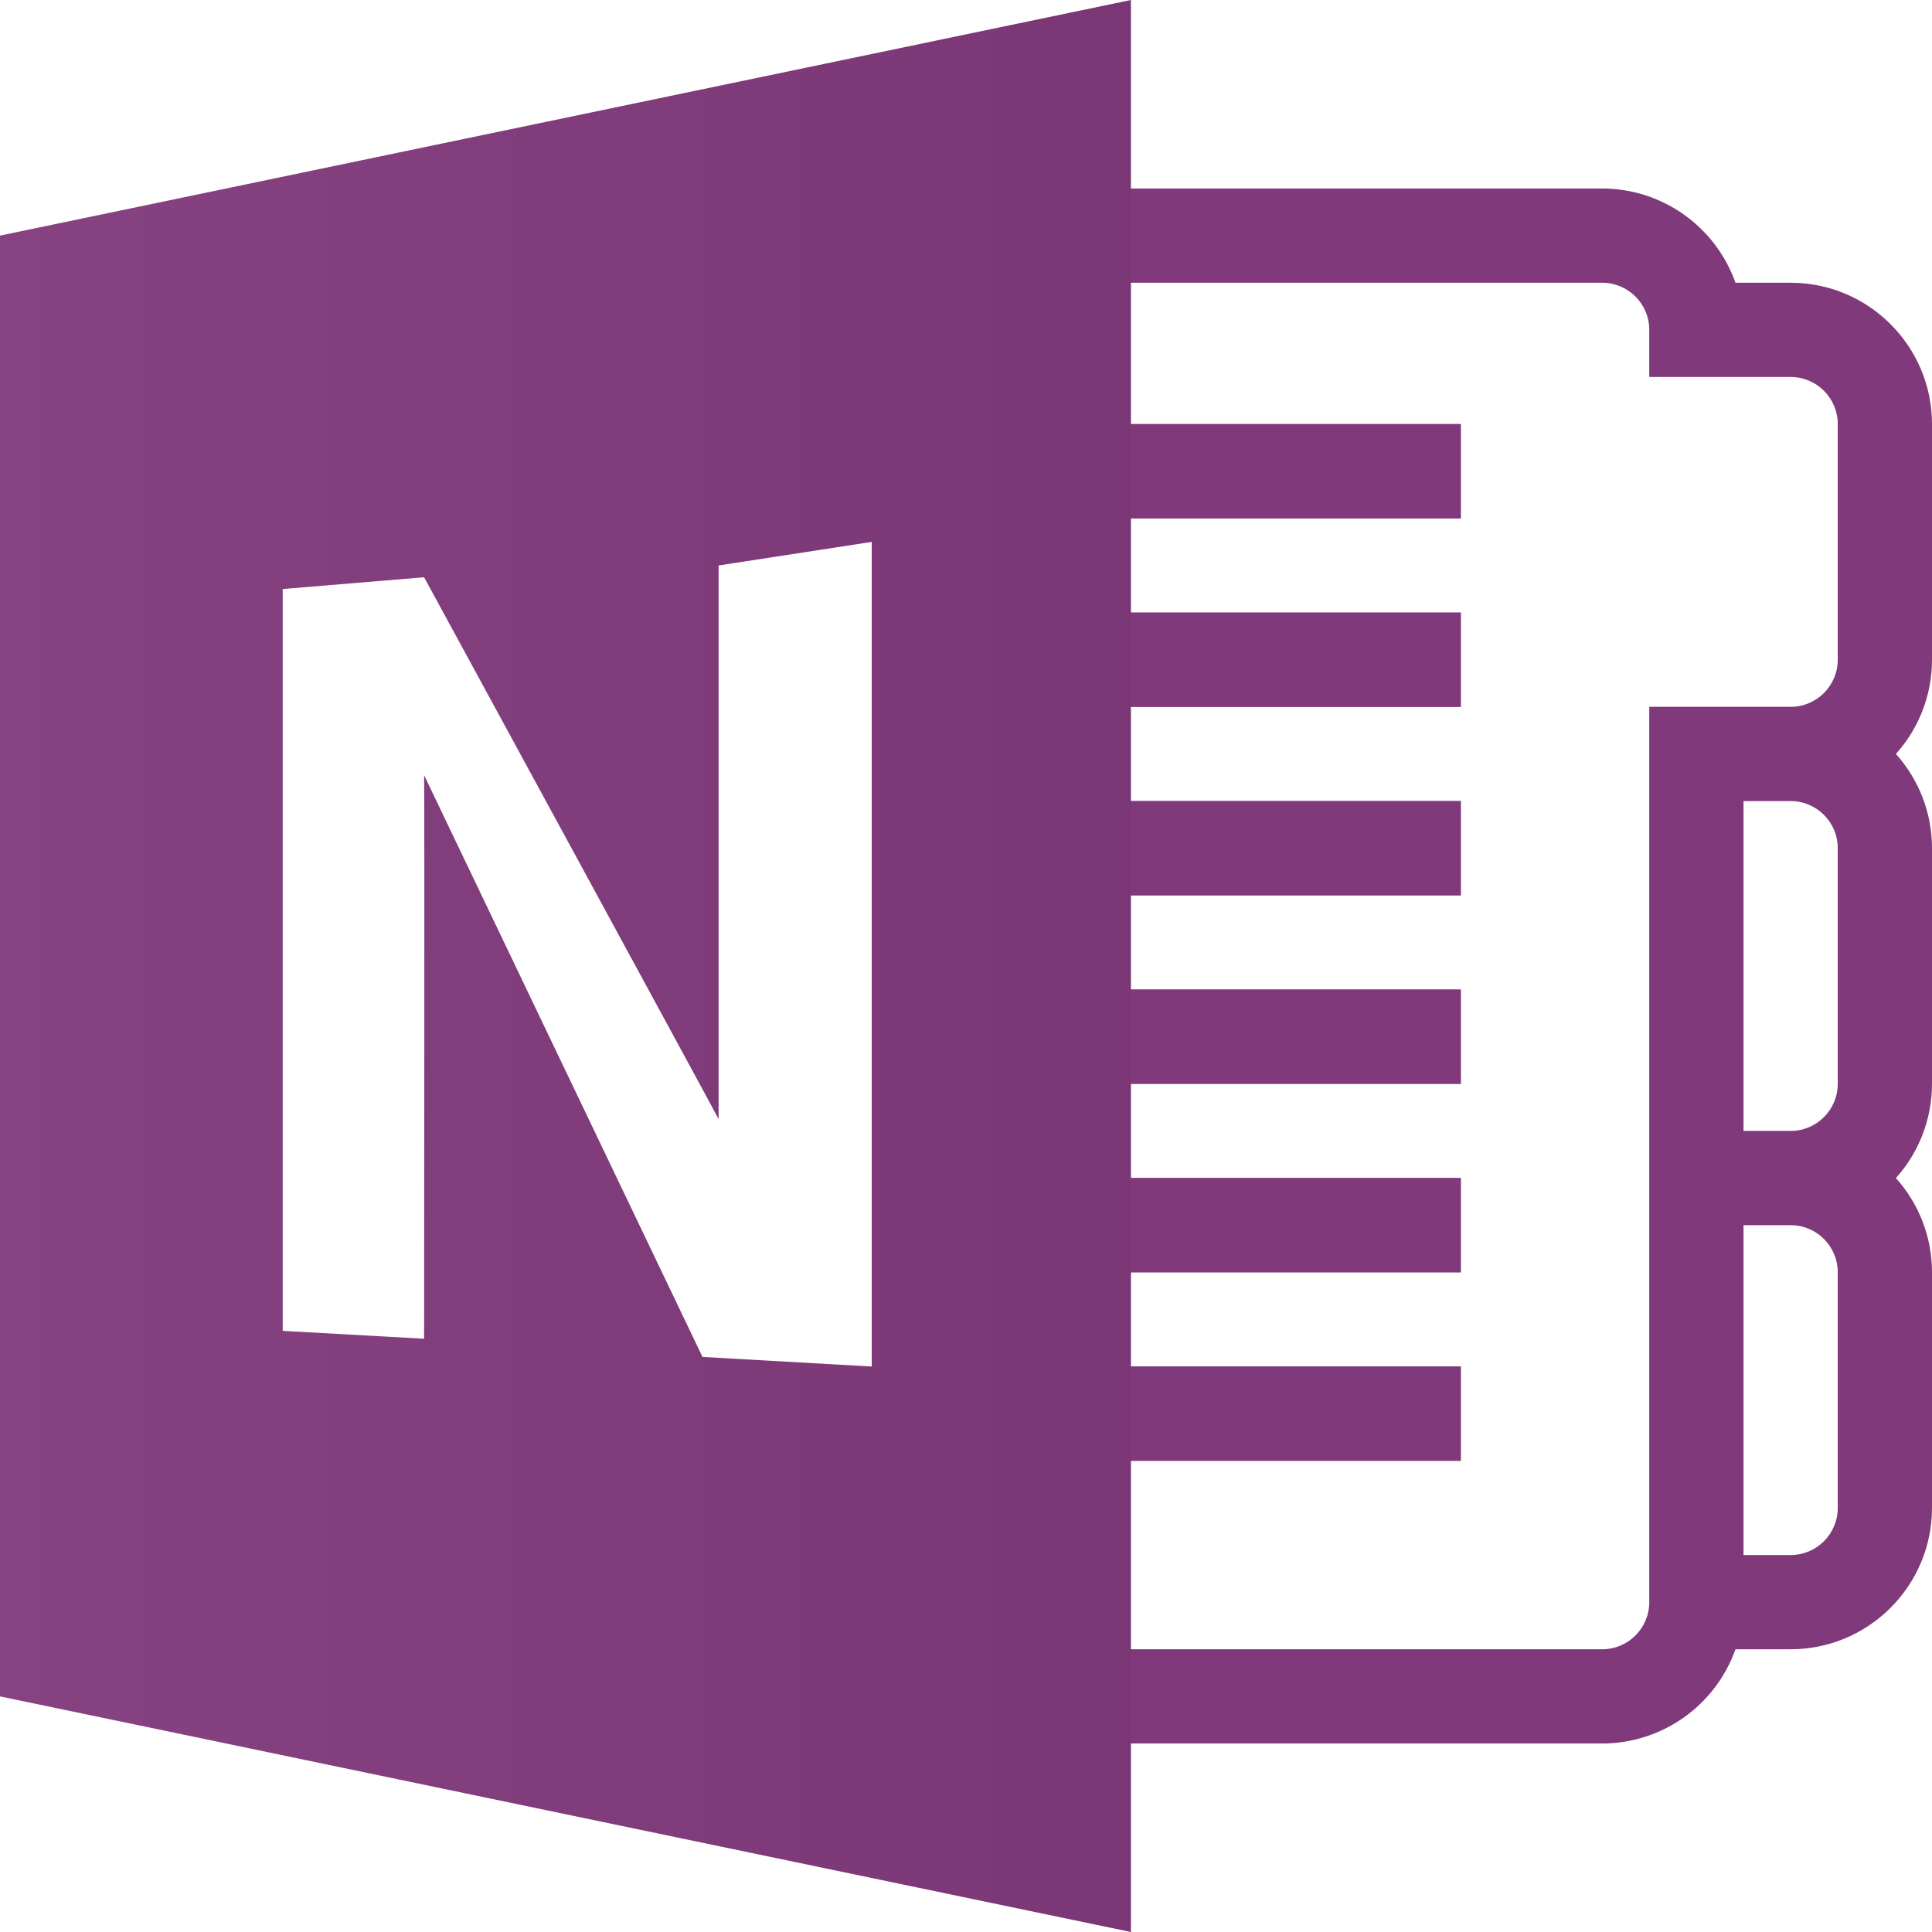 onenote icon logo png